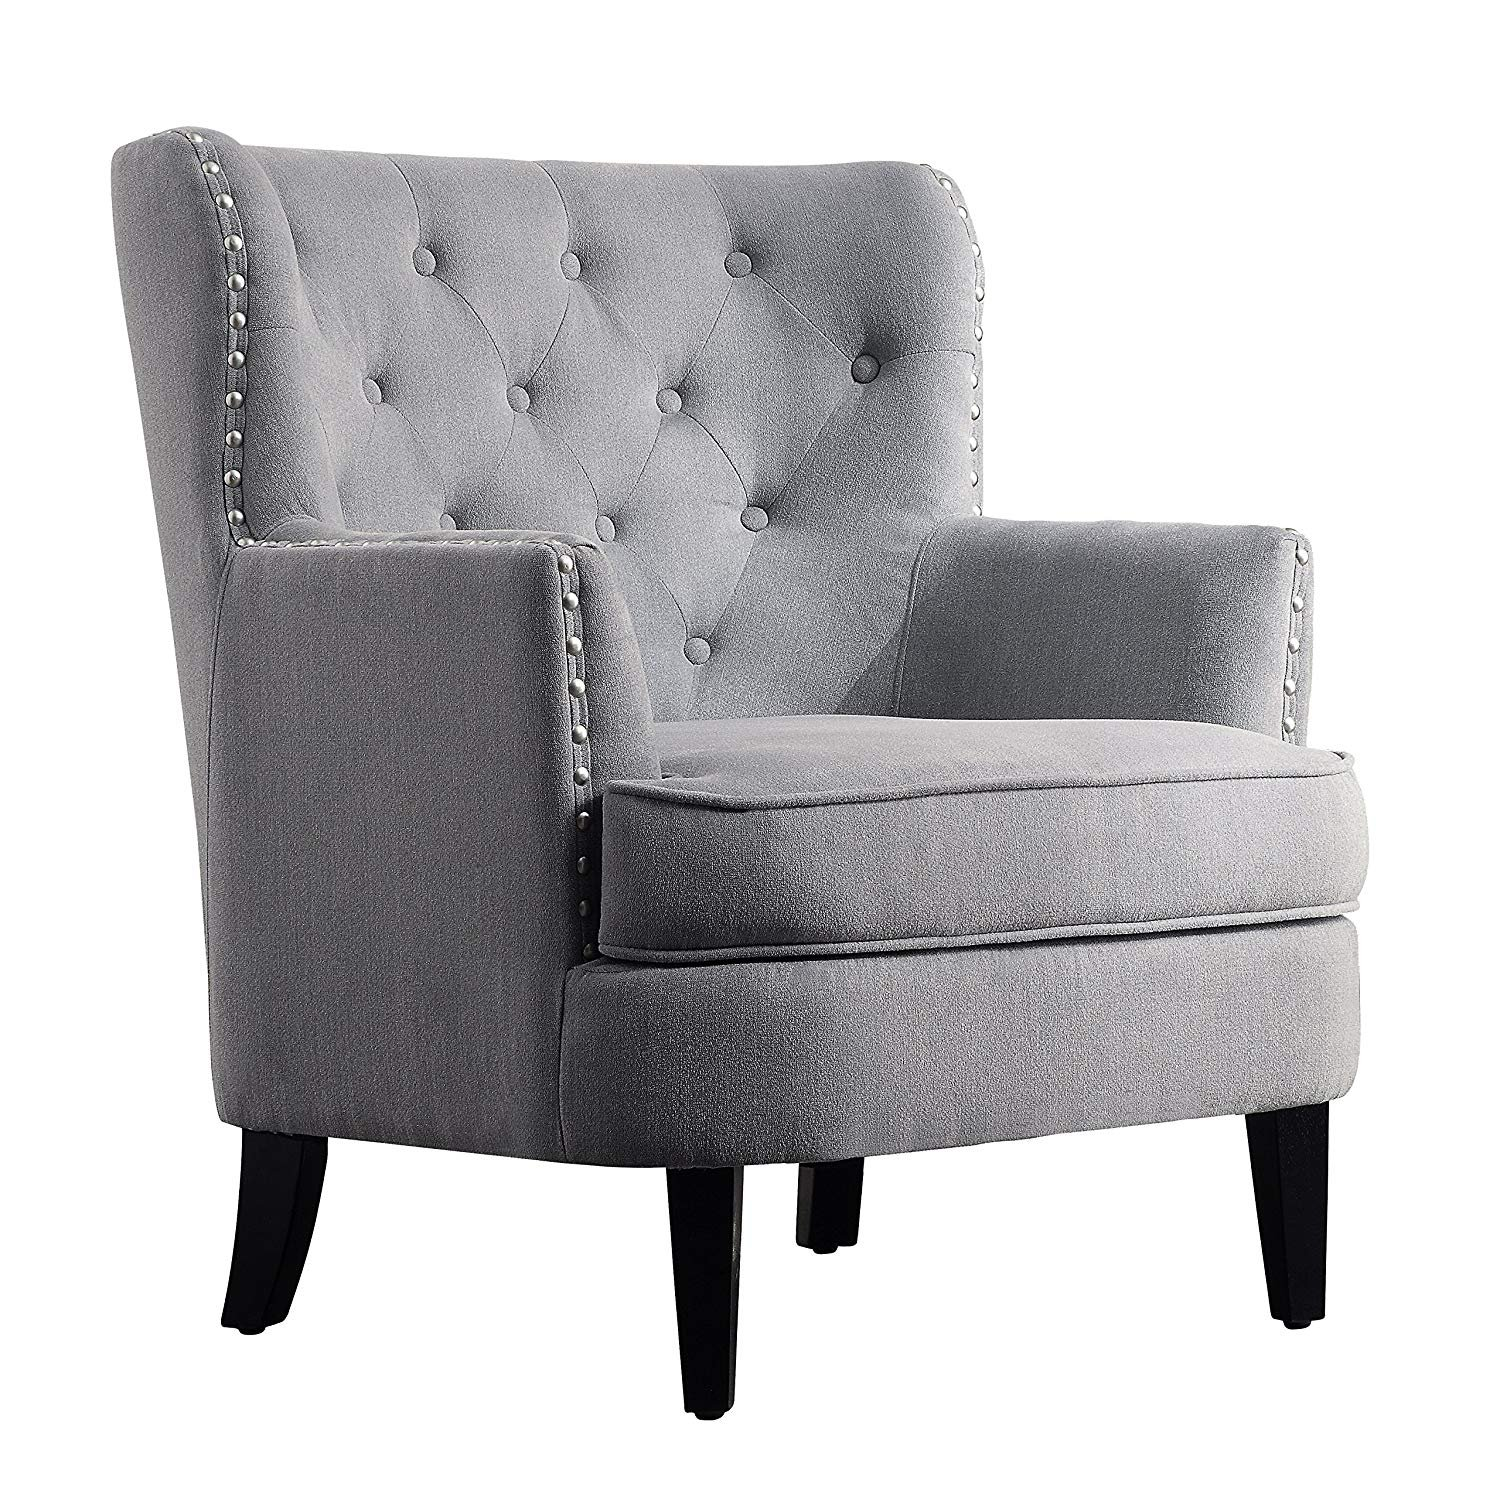 Amazon com rosevera home gustavo collection fabric nailhead club chair contemporary accent chairs grey kitchen dining